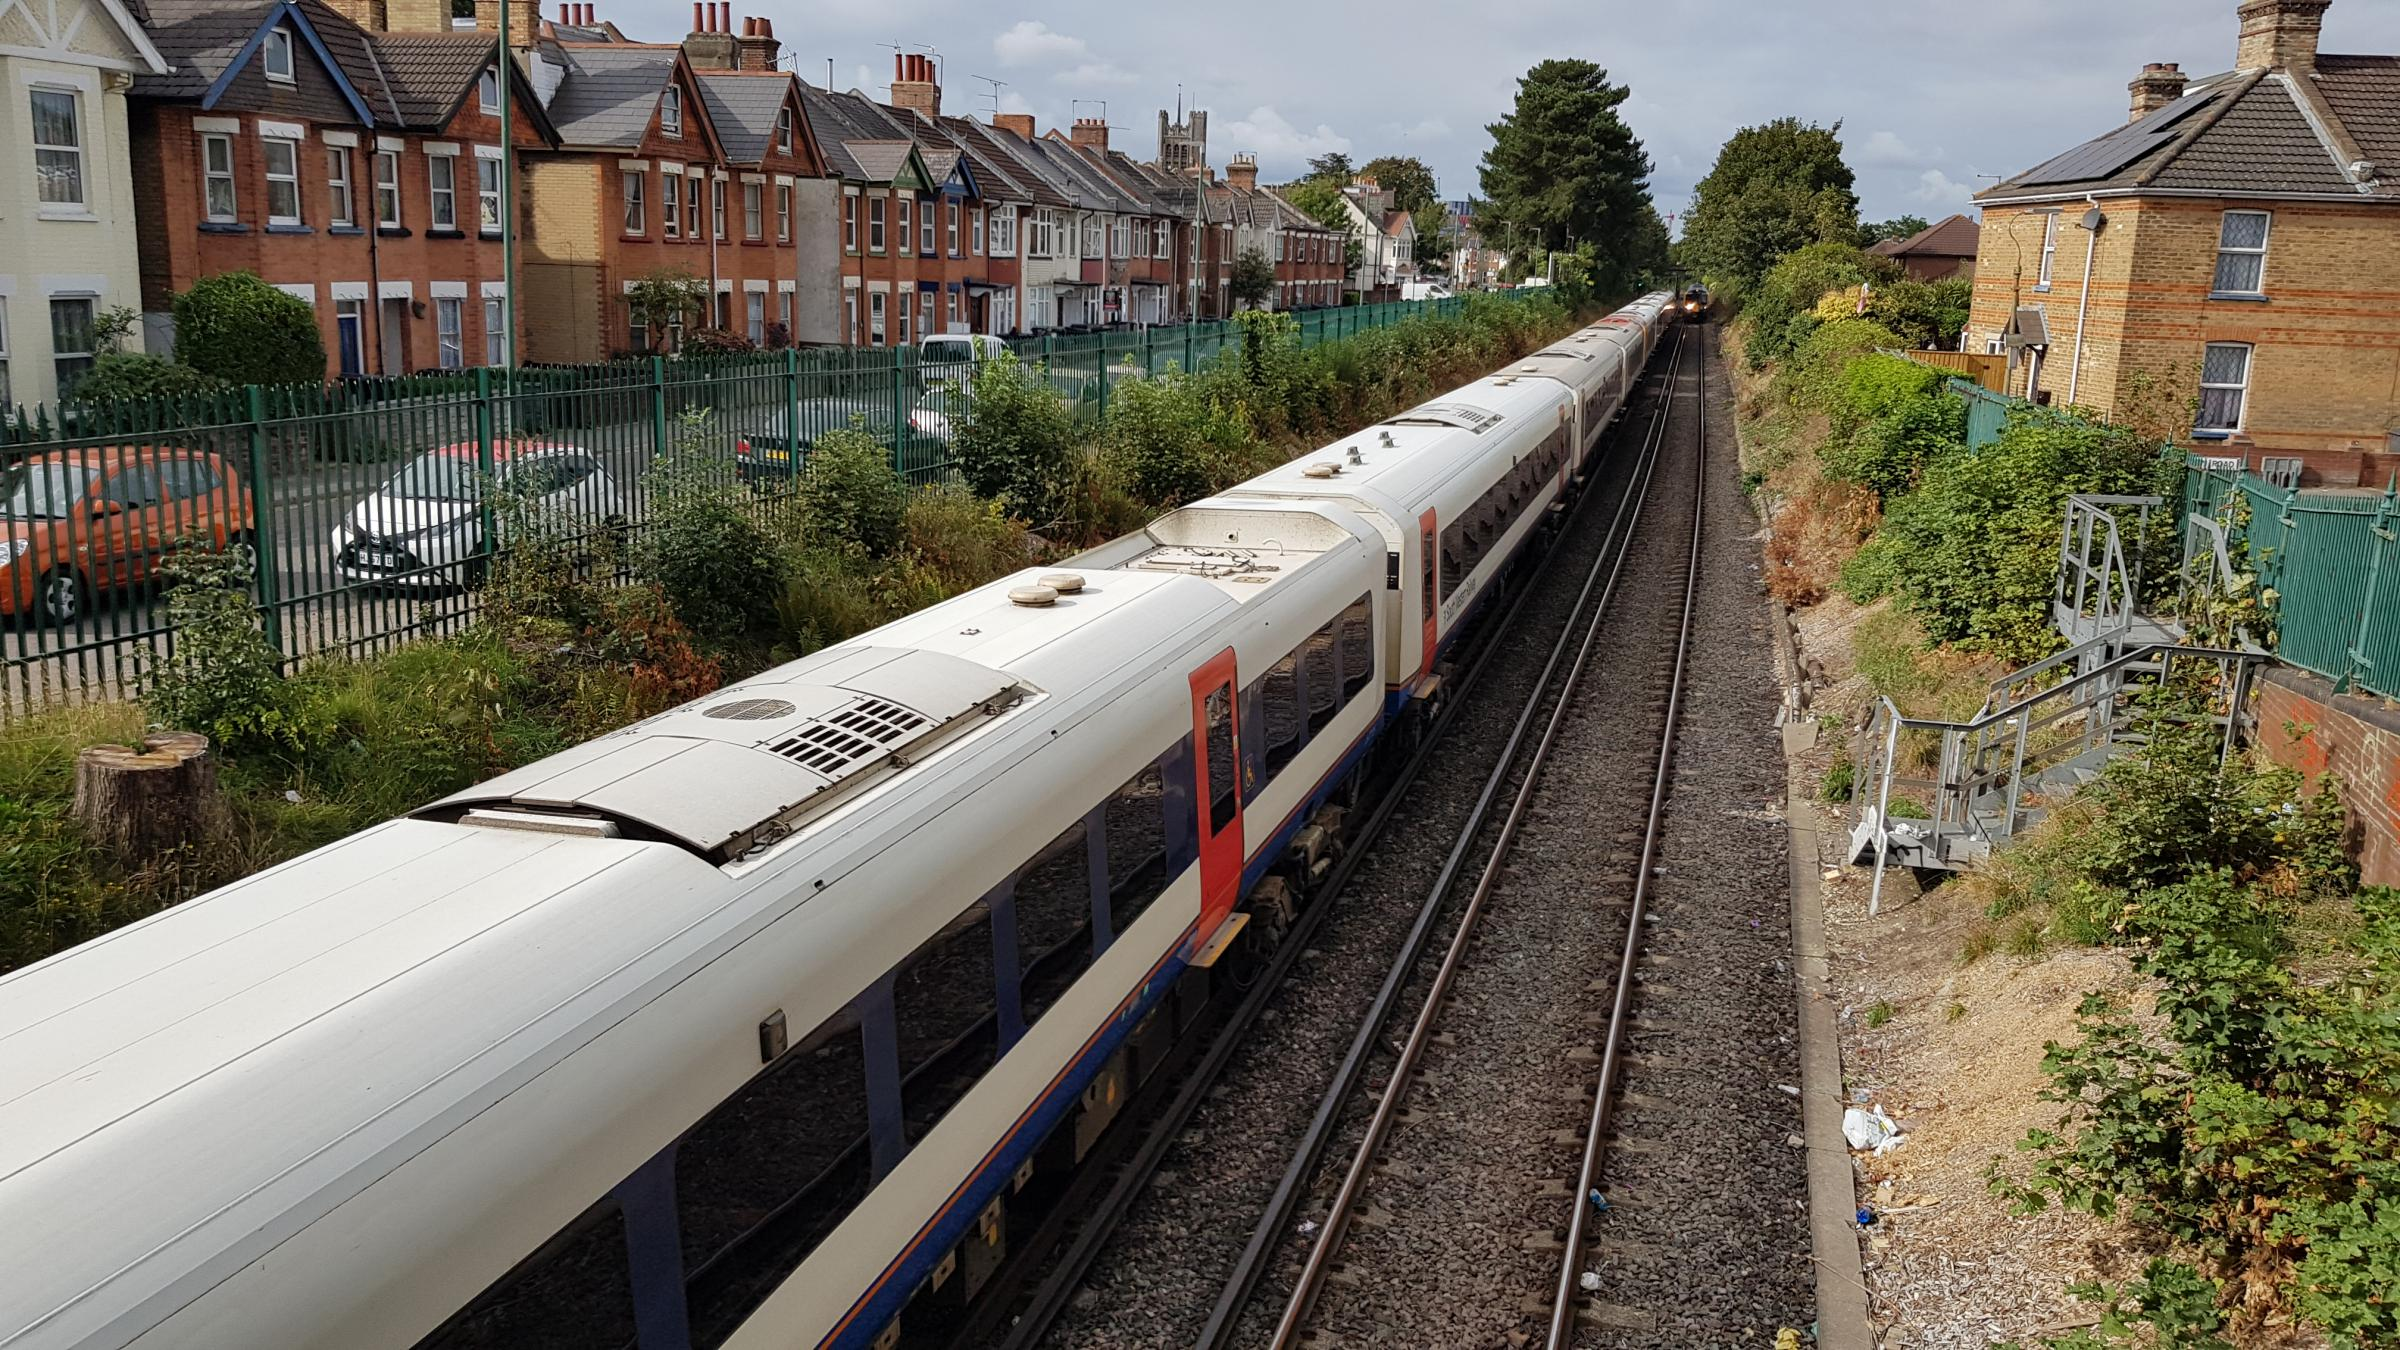 All railway lines at Bournemouth blocked due to trespasser